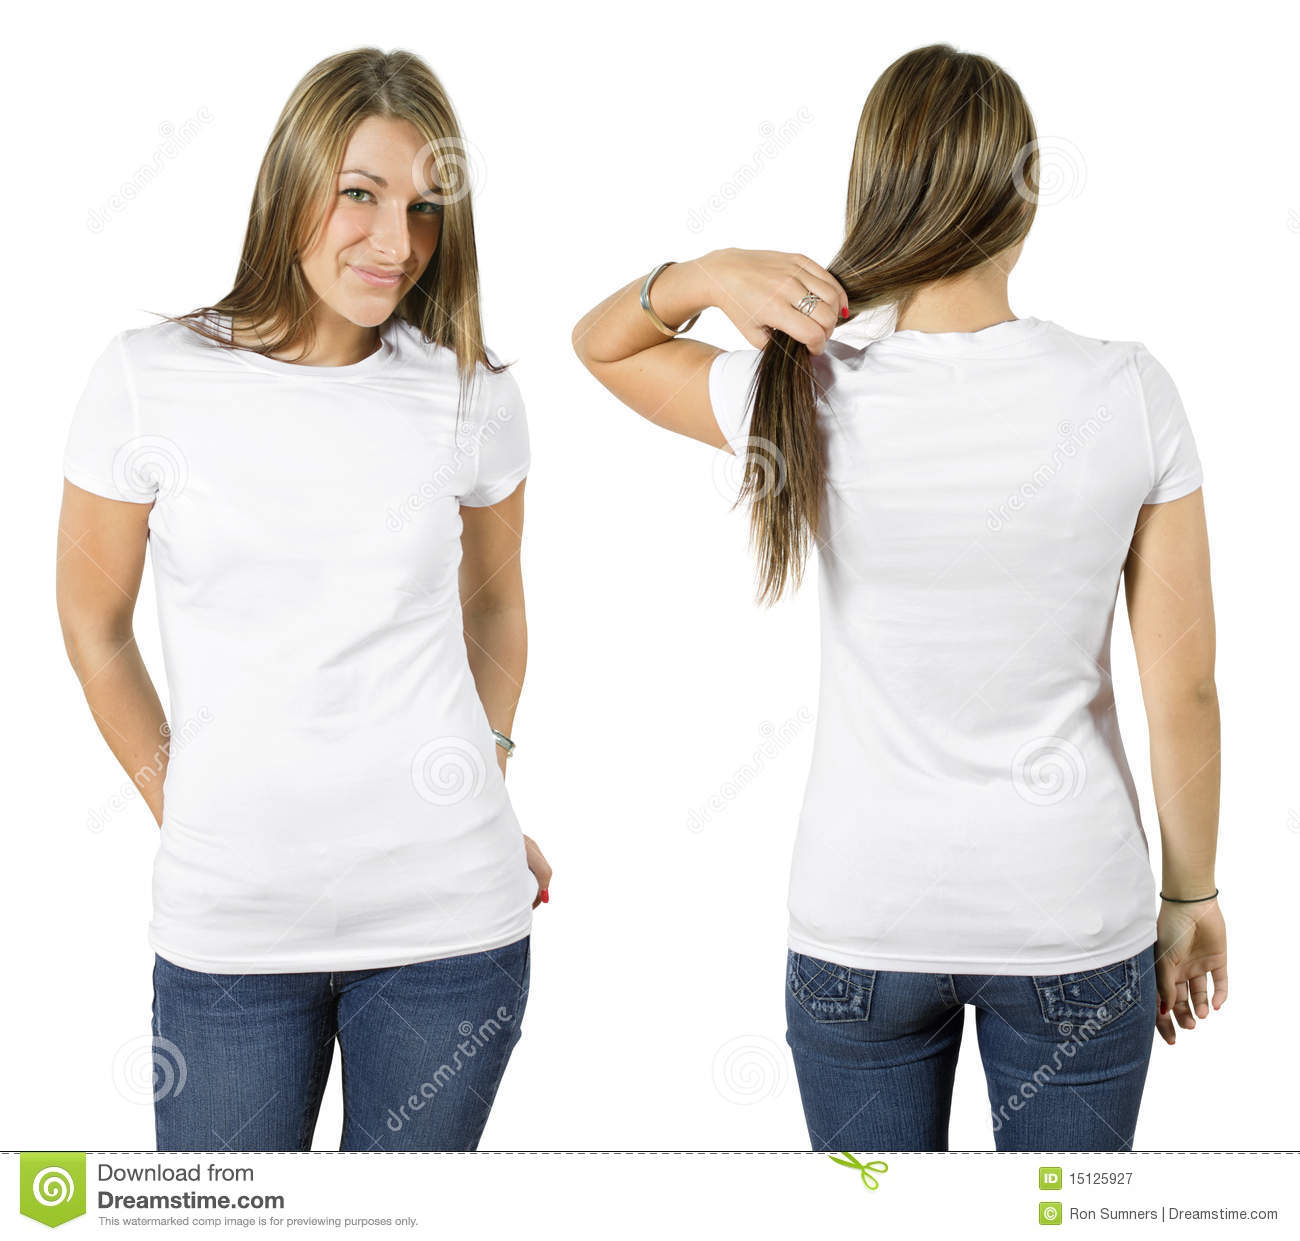 Female Wearing Blank White Shirt Stock Image - Image of attractive ...